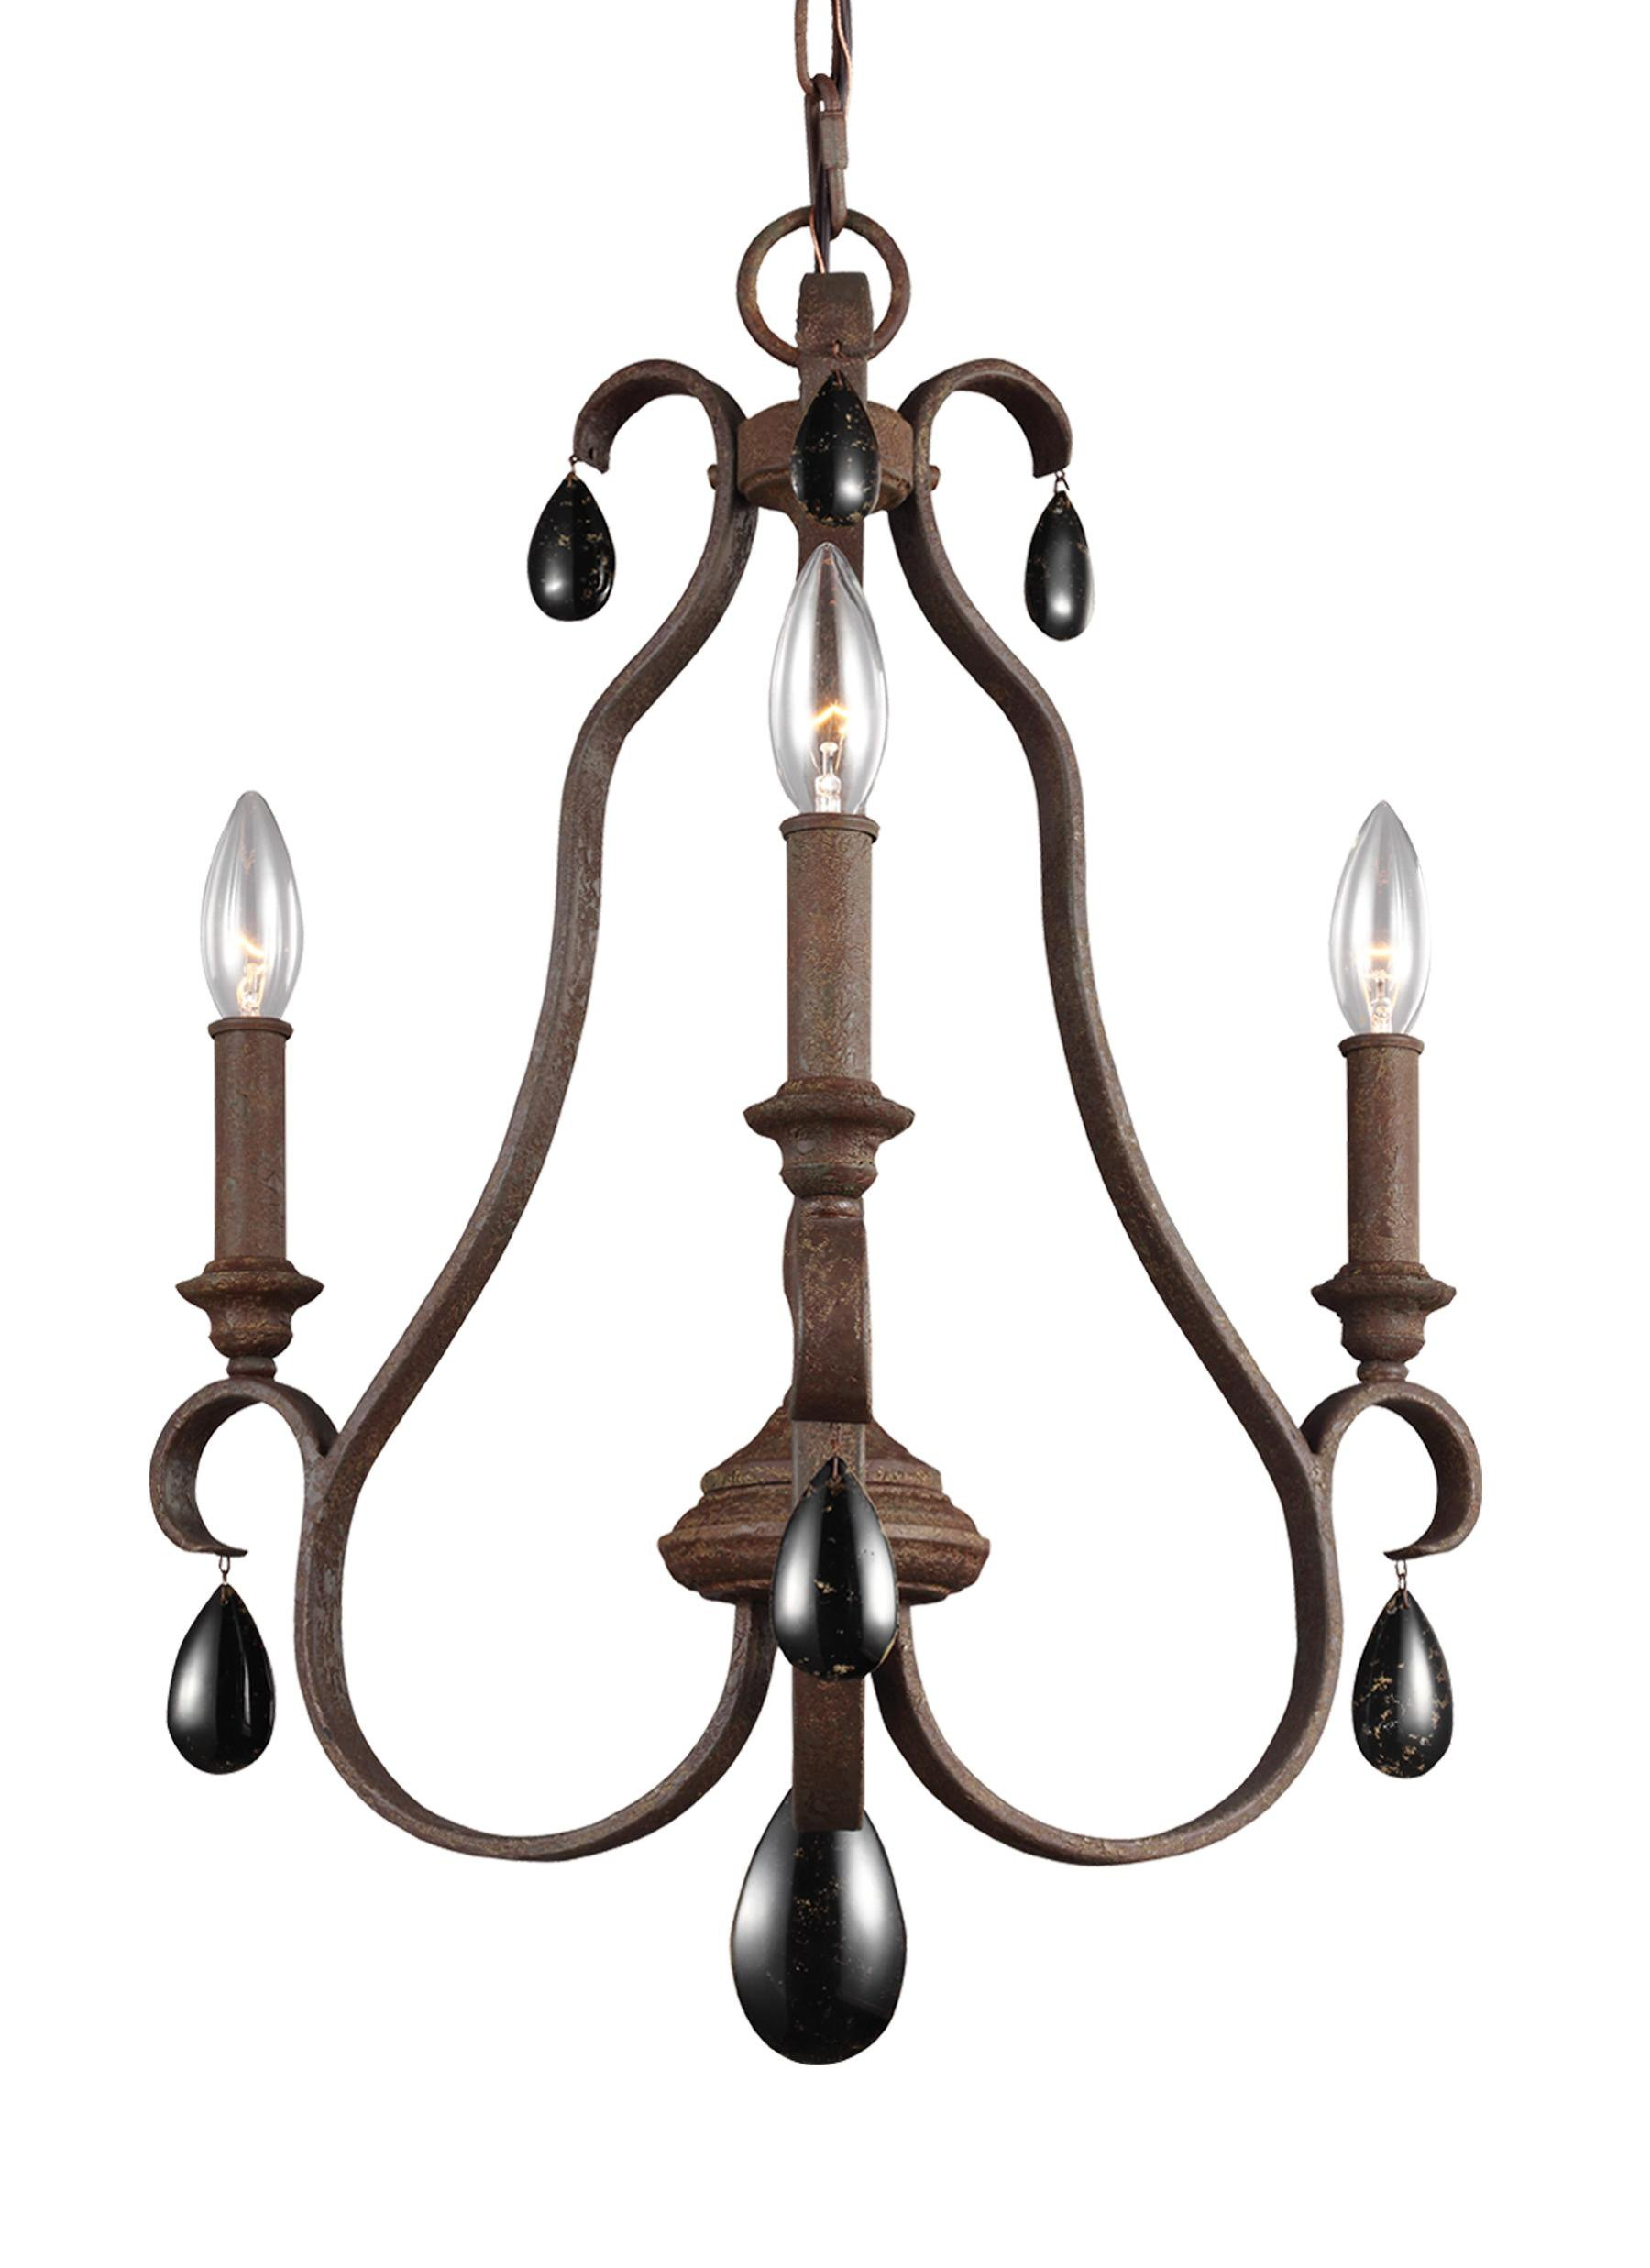 Feiss F3069/3WI DeWitt Crystal Candle Chandelier Lighting, 3-Light, 180watts, Iron (18''W by 22''H)